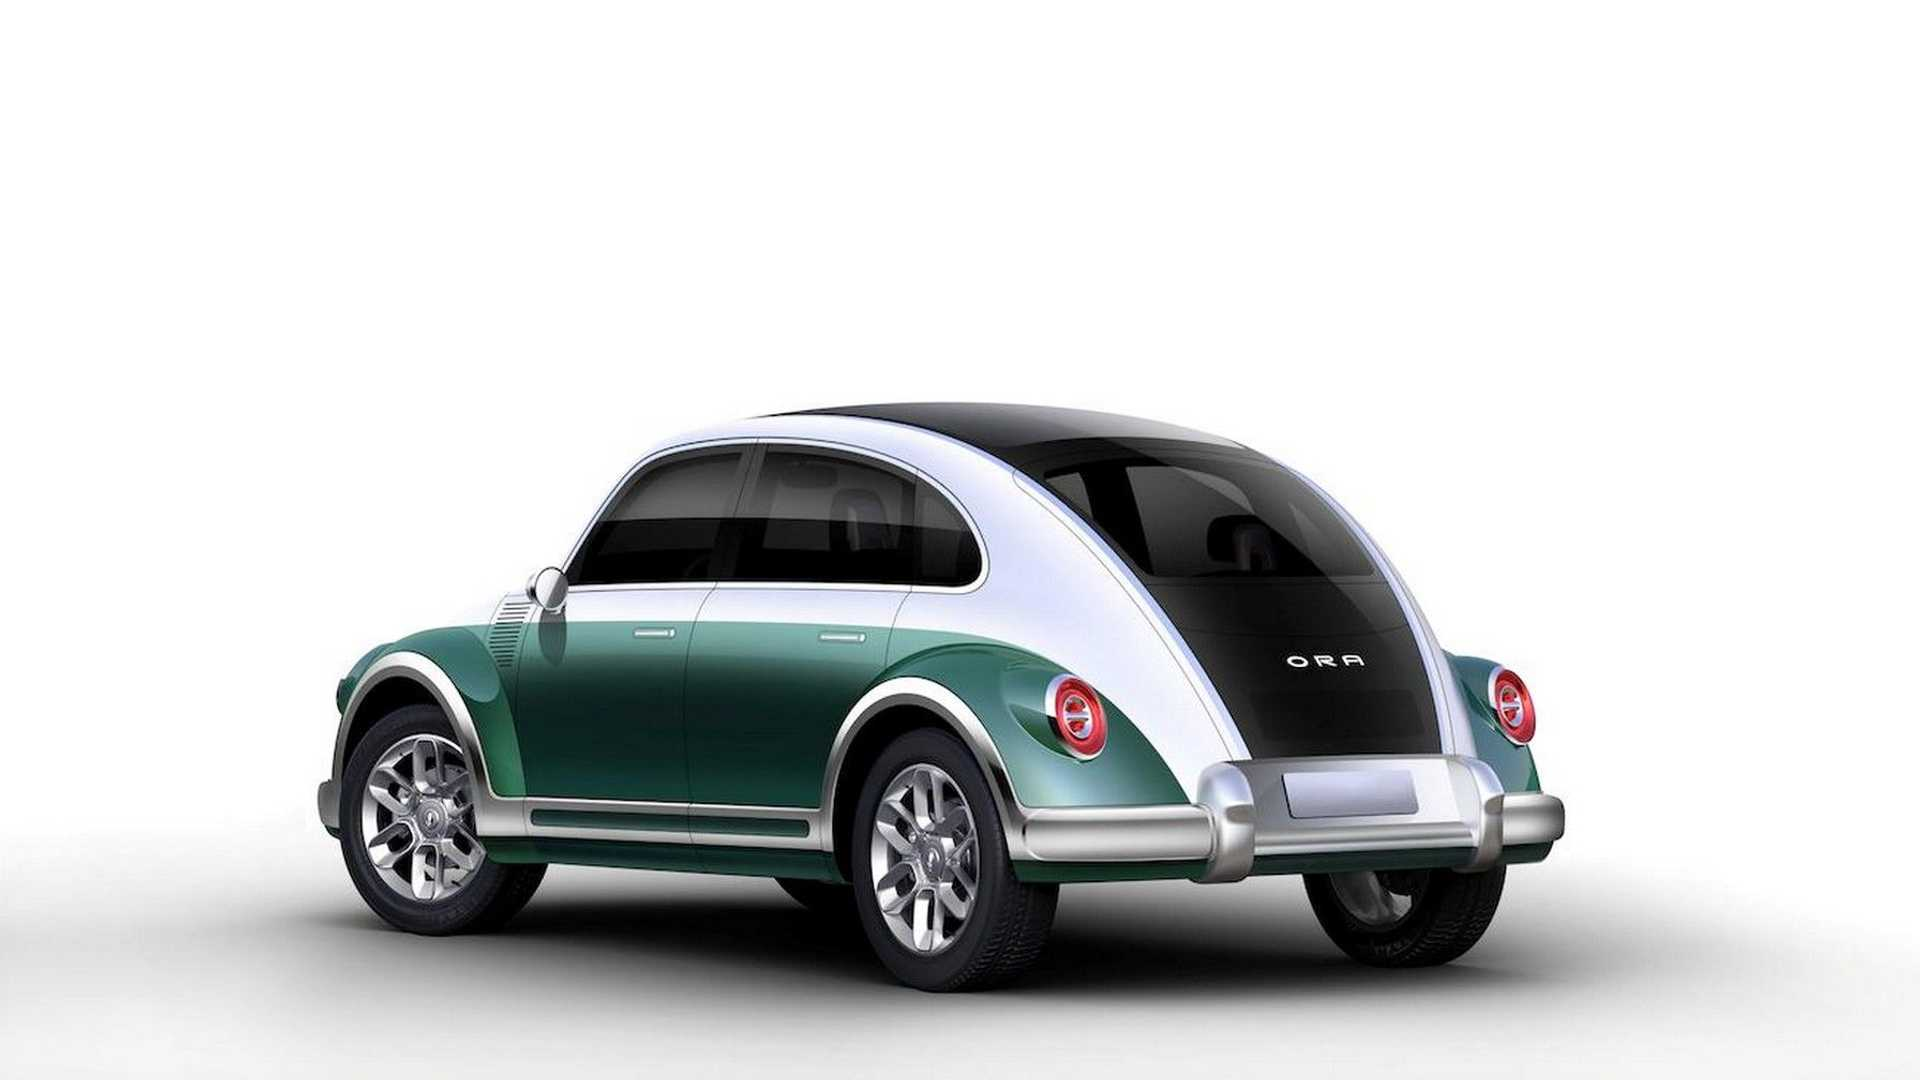 https://cdn.motor1.com/images/mgl/N7n4Y/s6/ora-punk-cat-reveals-how-much-it-was-inspired-by-the-classic-vw-beetle.jpg